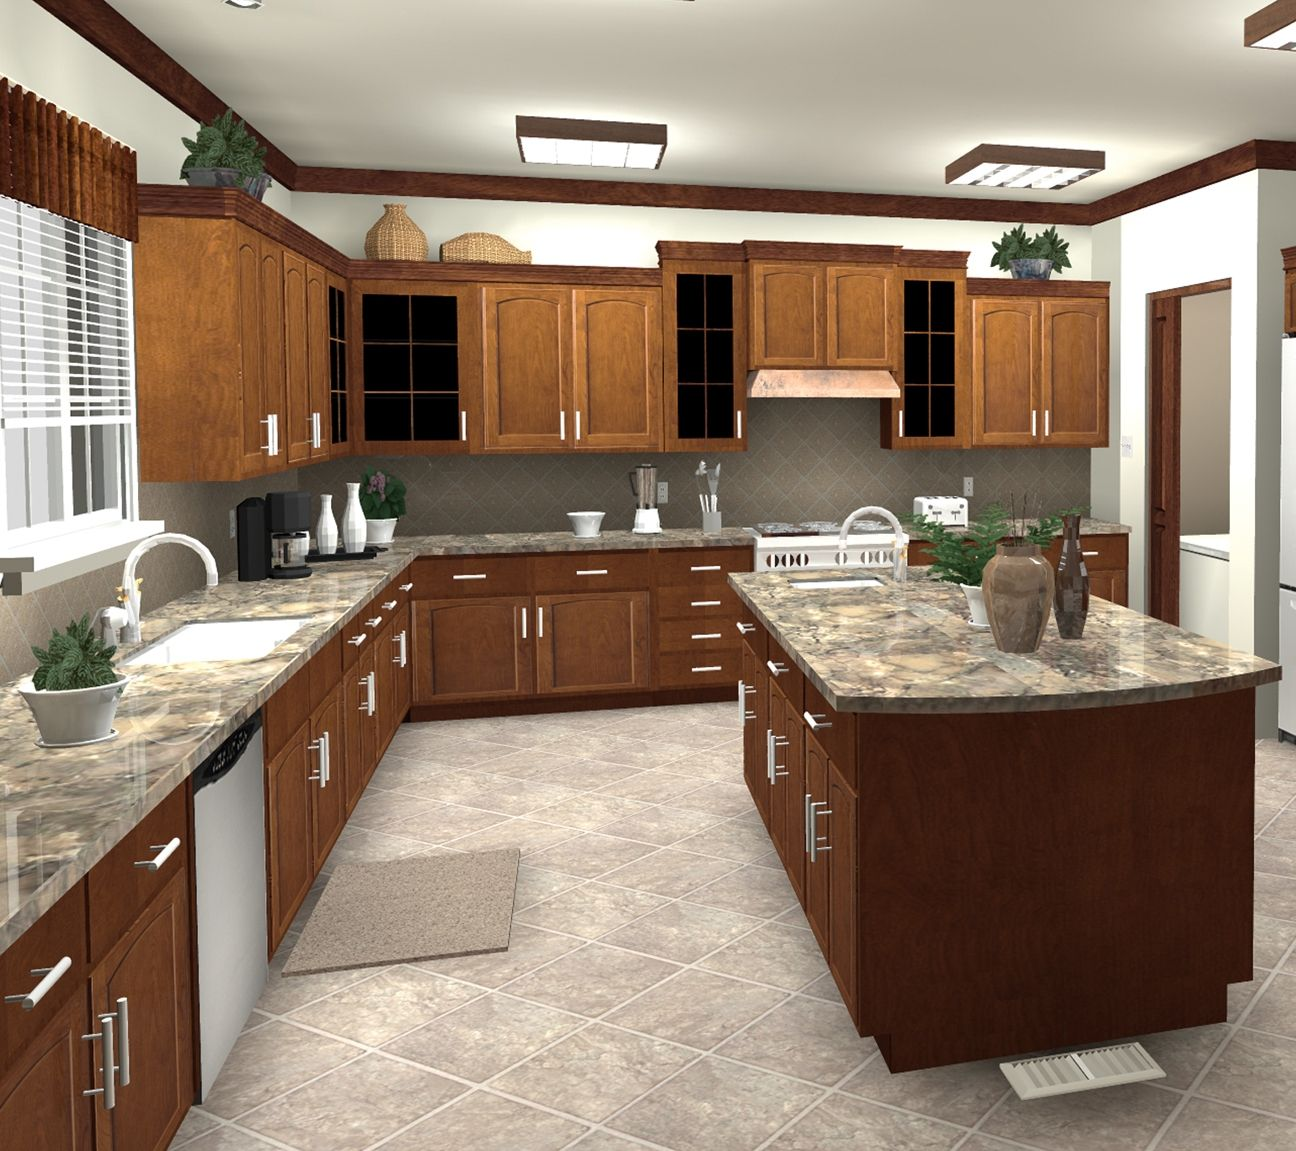 Pro Kitchens Design Homer Glen  Httplatulufeed Inspiration Designing My Kitchen Decorating Design